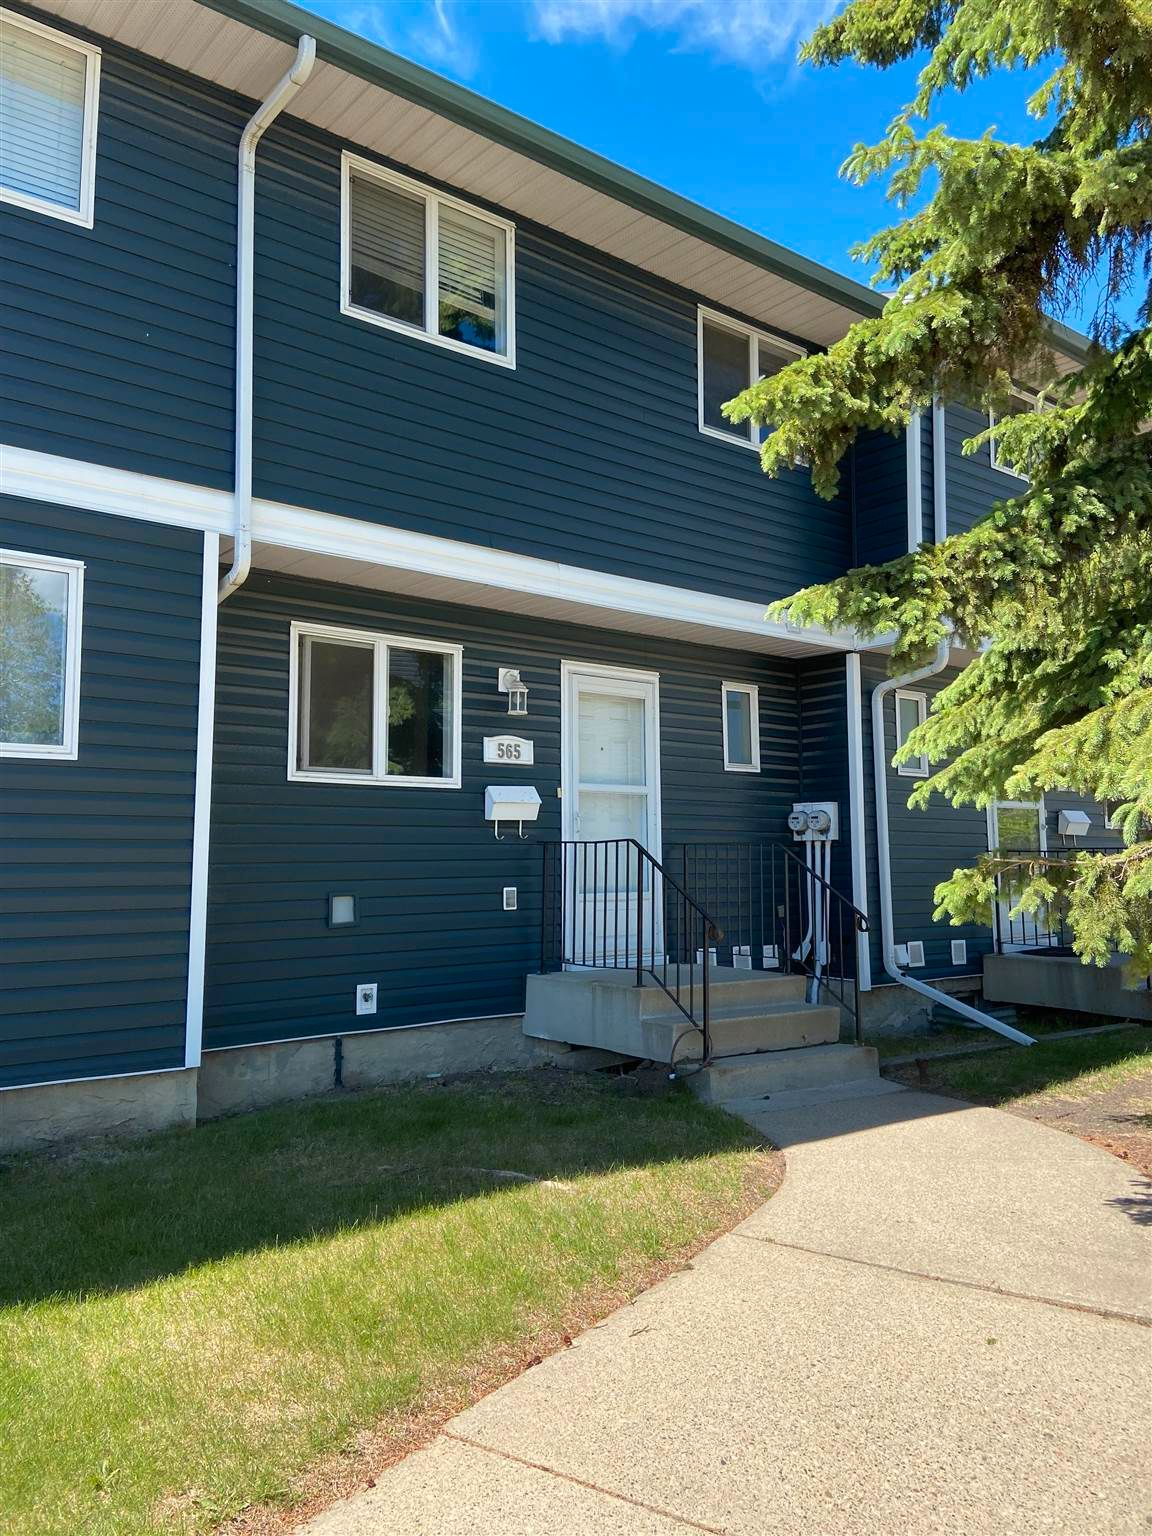 Main Photo: 565 DUNLUCE Road in Edmonton: Zone 27 Townhouse for sale : MLS®# E4248896